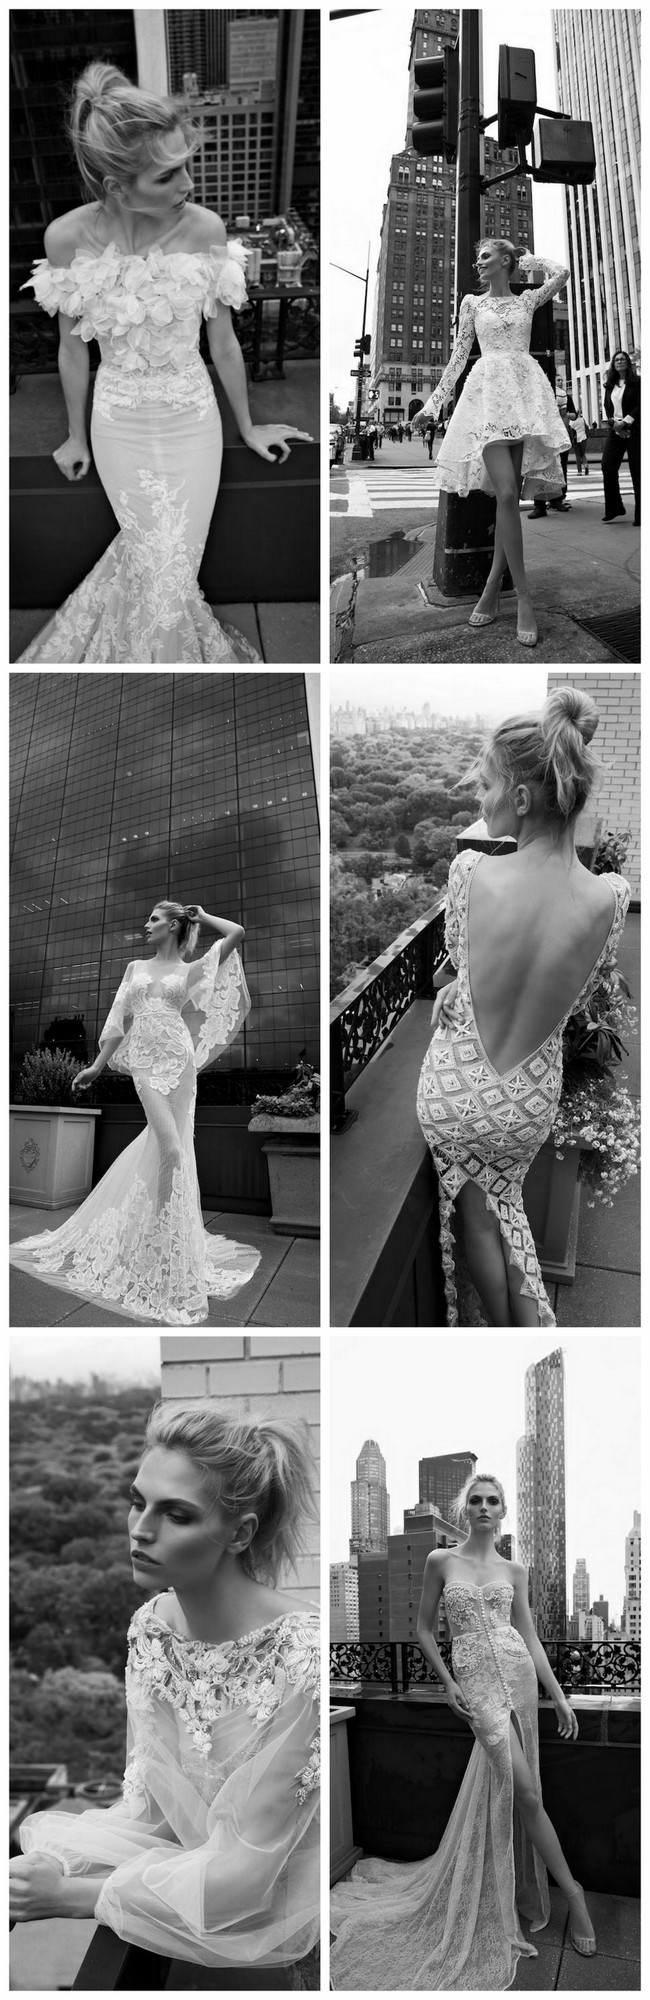 Inbal Dror's 2016 Wedding Dress Collection inspired by New York!